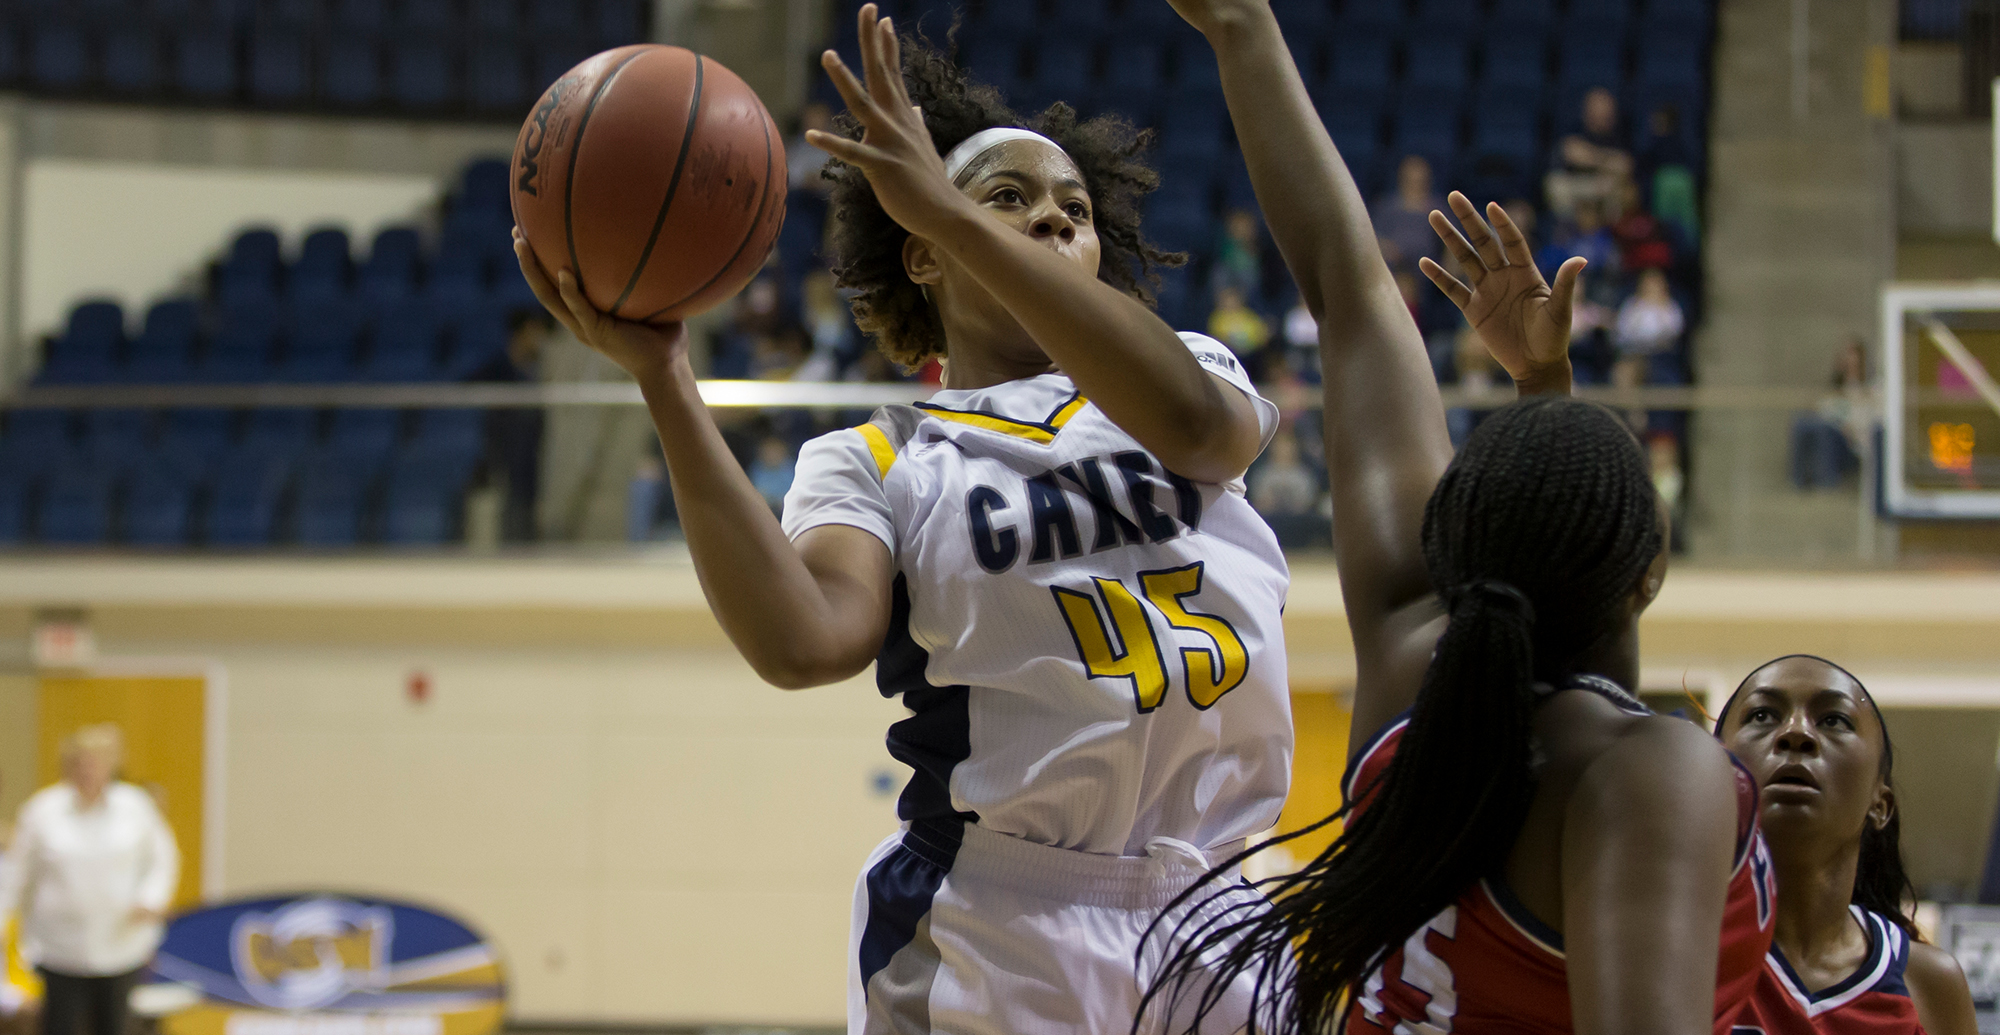 Trimble's Double-Double Not Enough for Lady Canes